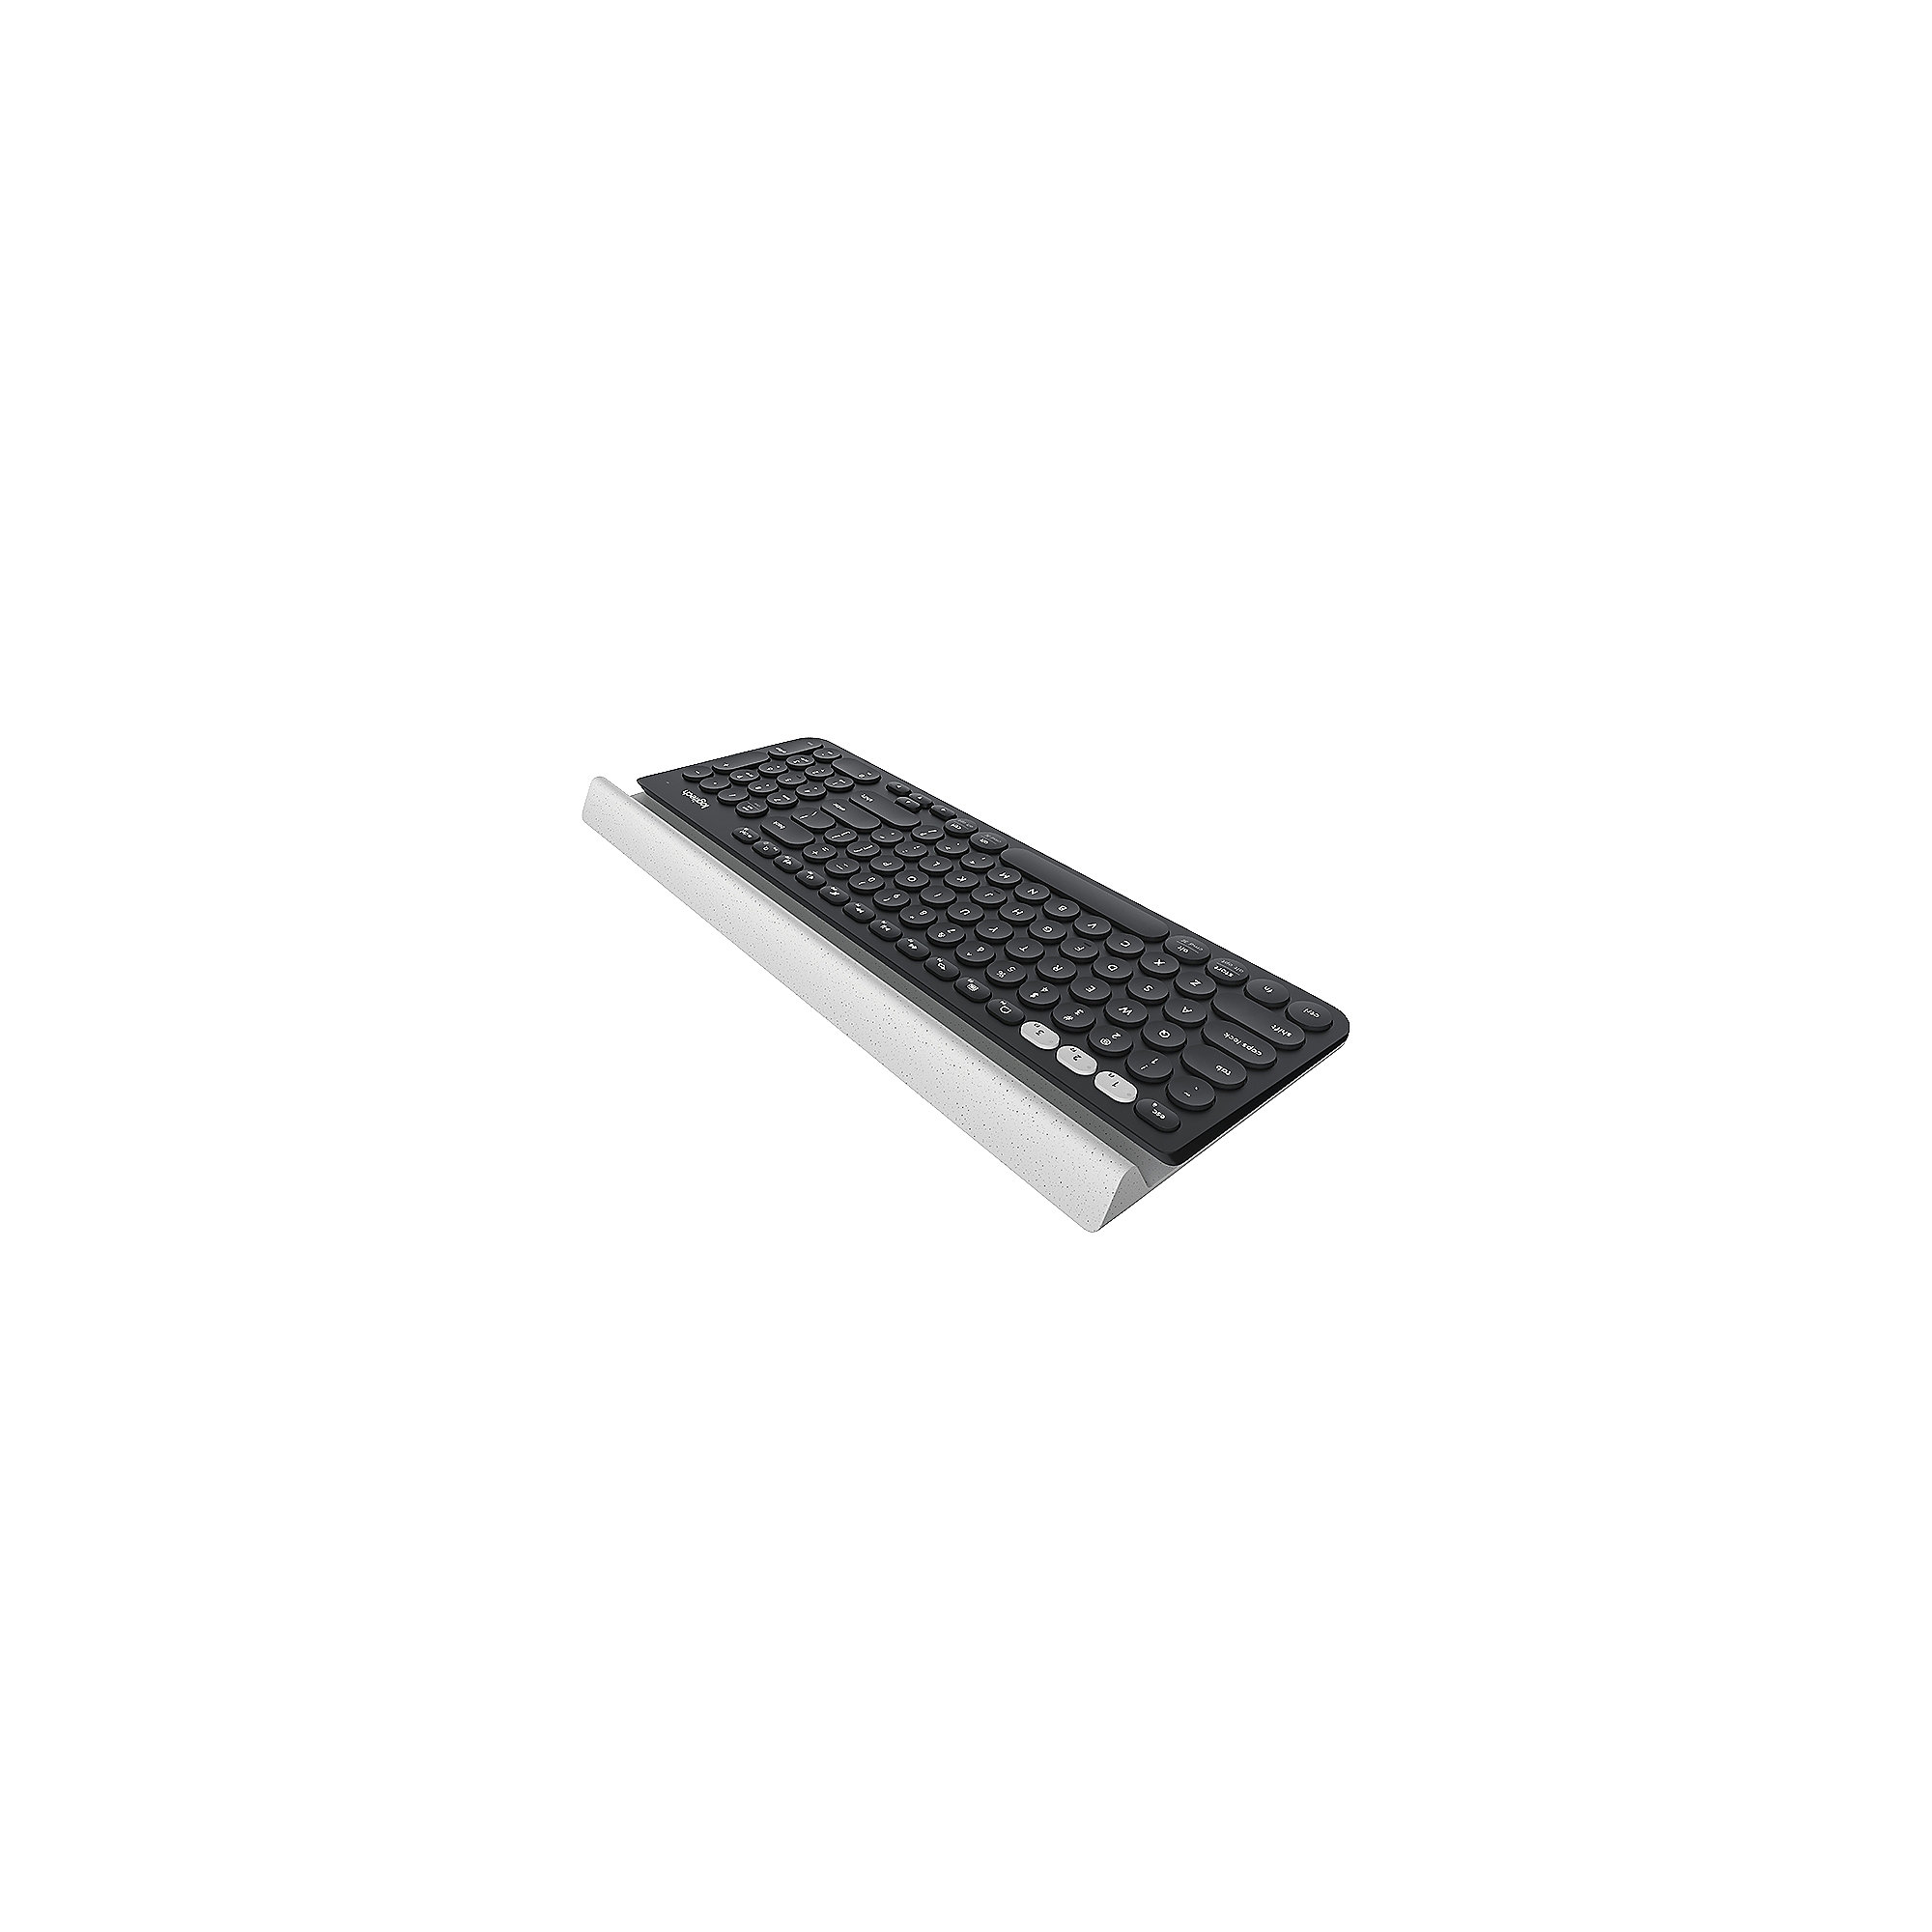 Logitech K780 Multi-Device Bluetooth Keyboard